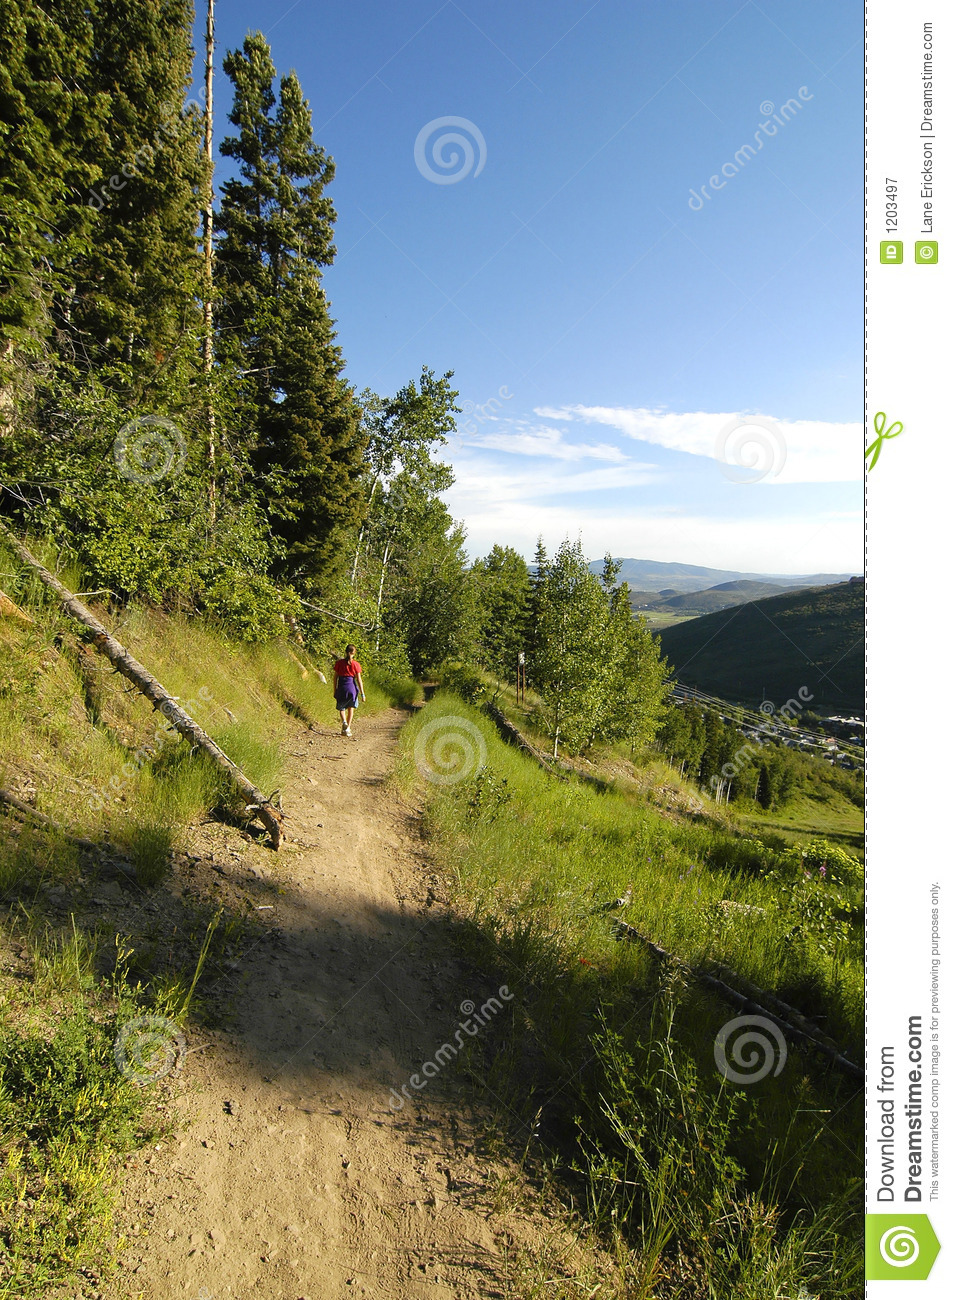 Girl with Red Shirt Hiking a Trail in the Forest